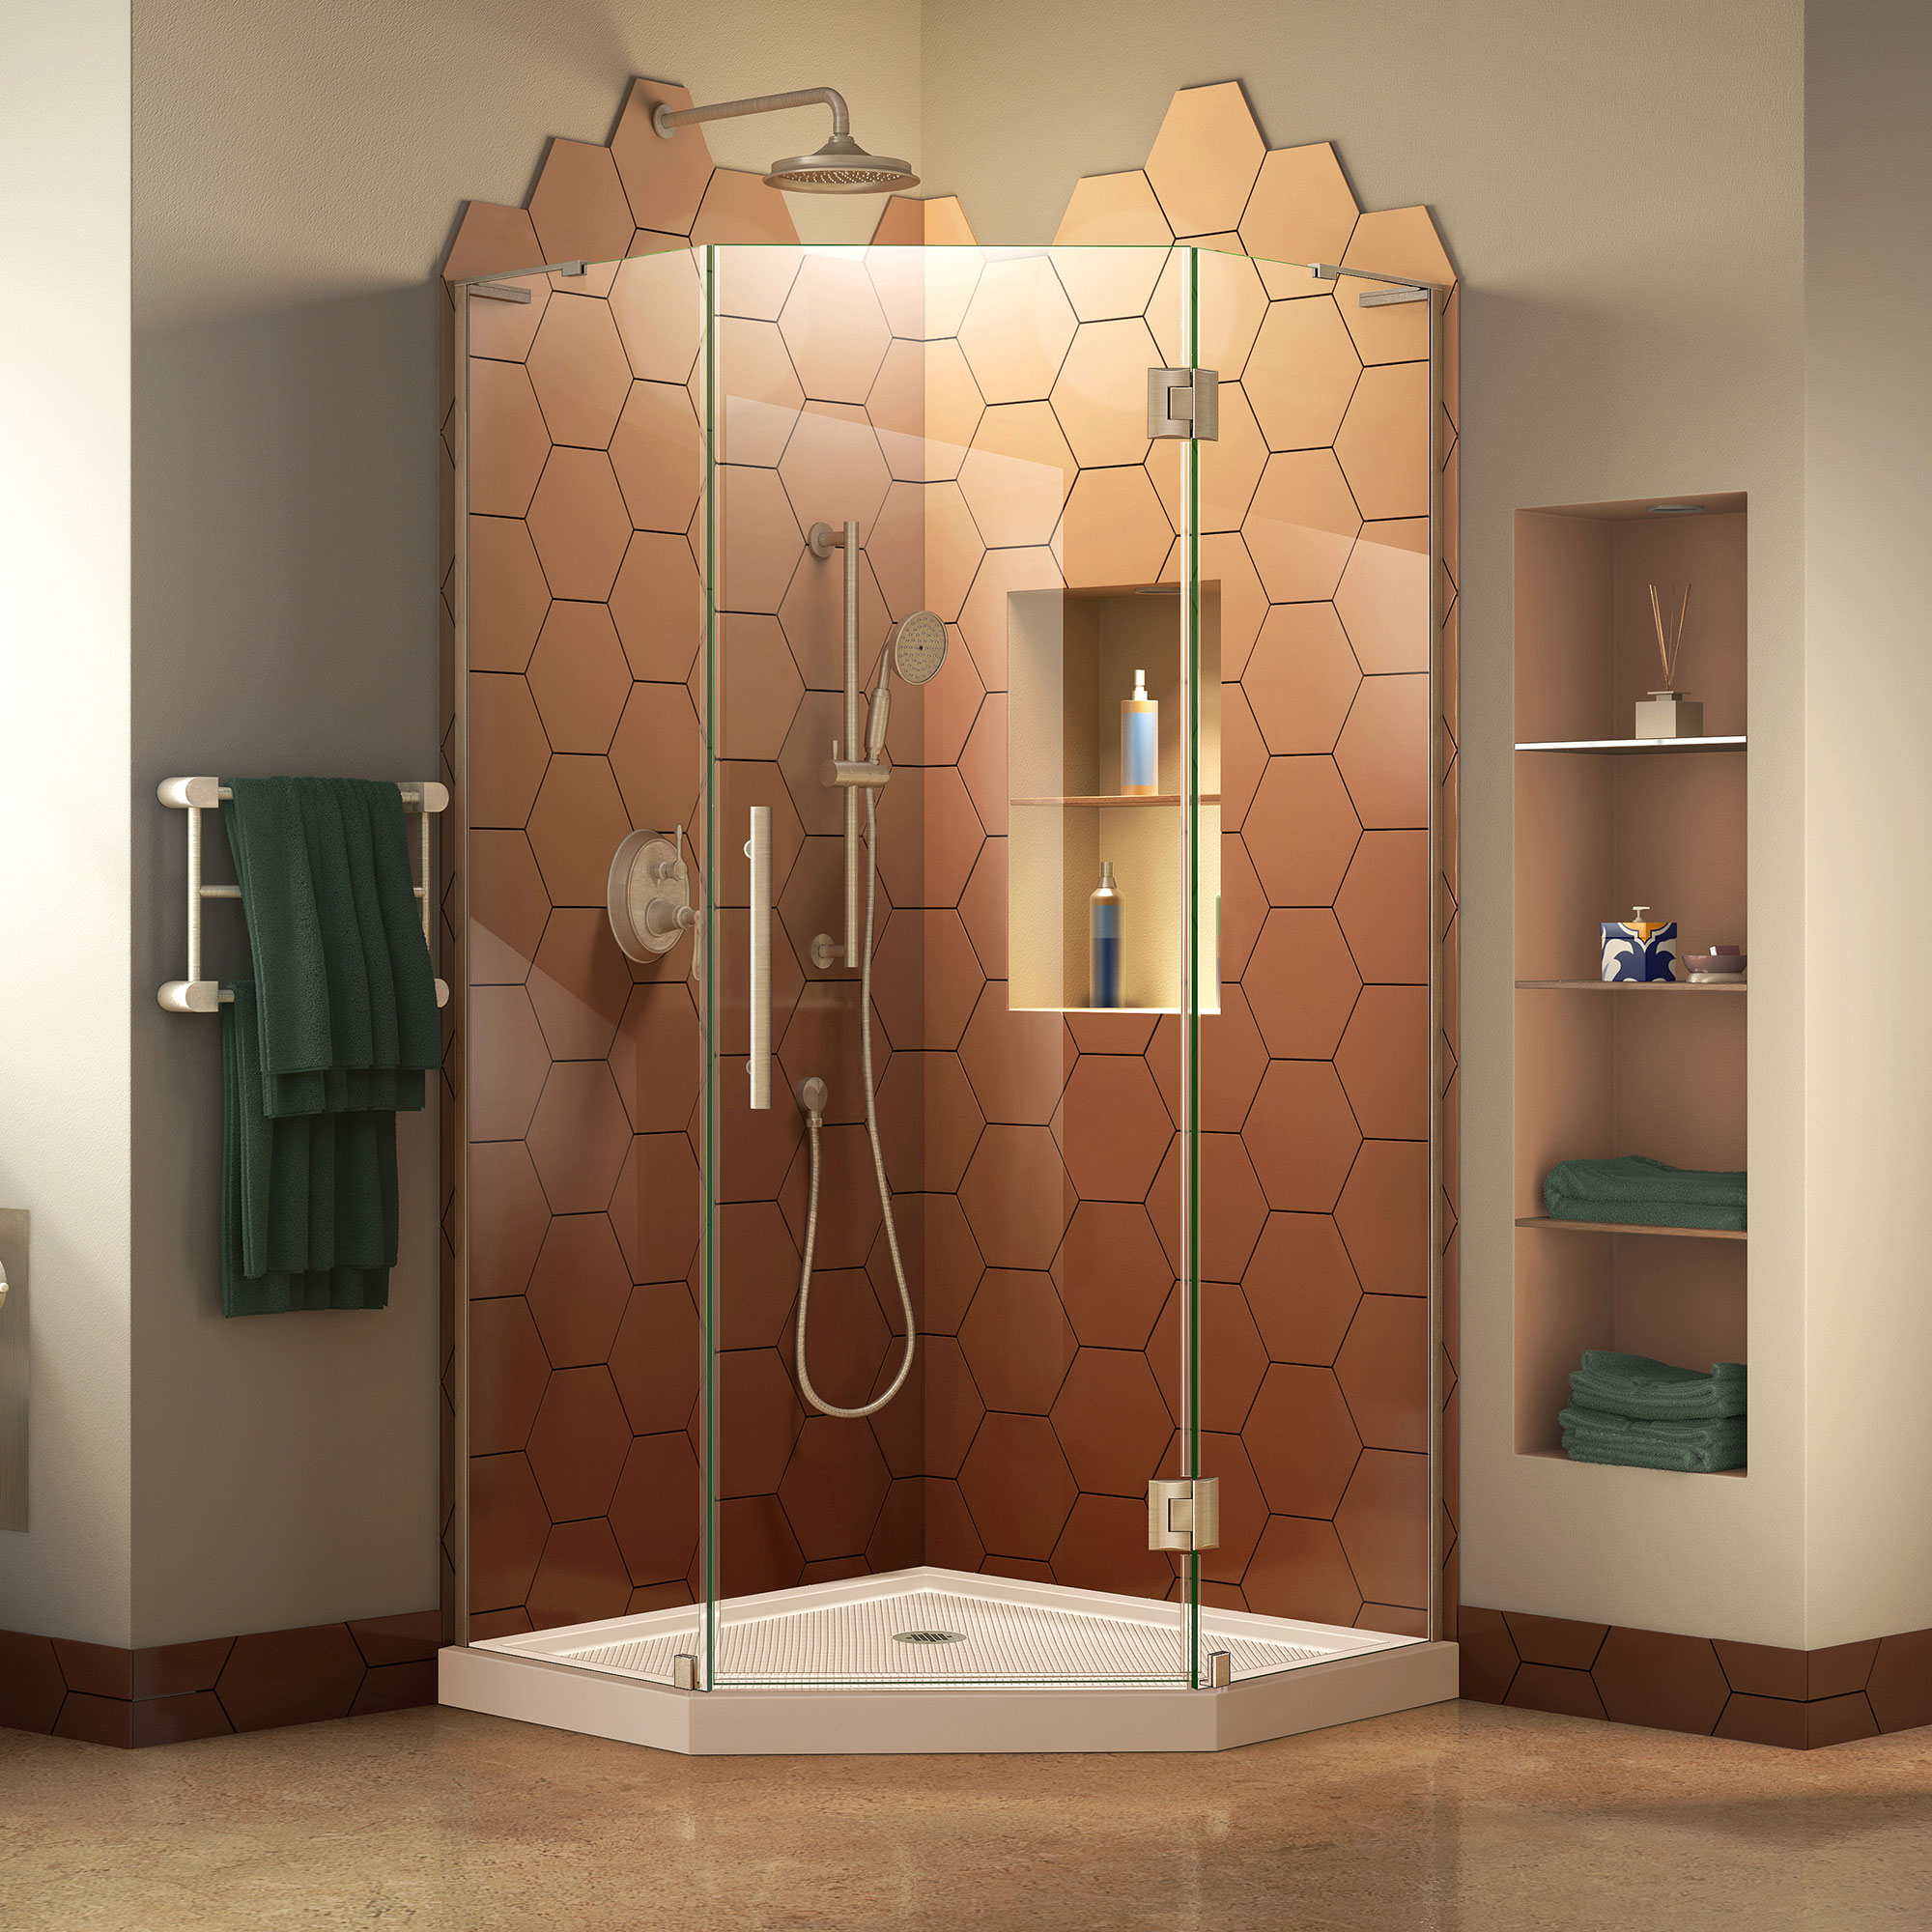 DreamLine Prism Plus 34 in. D x 34 in. W x 72 in. H Frameless Hinged Shower Enclosure in Chrome